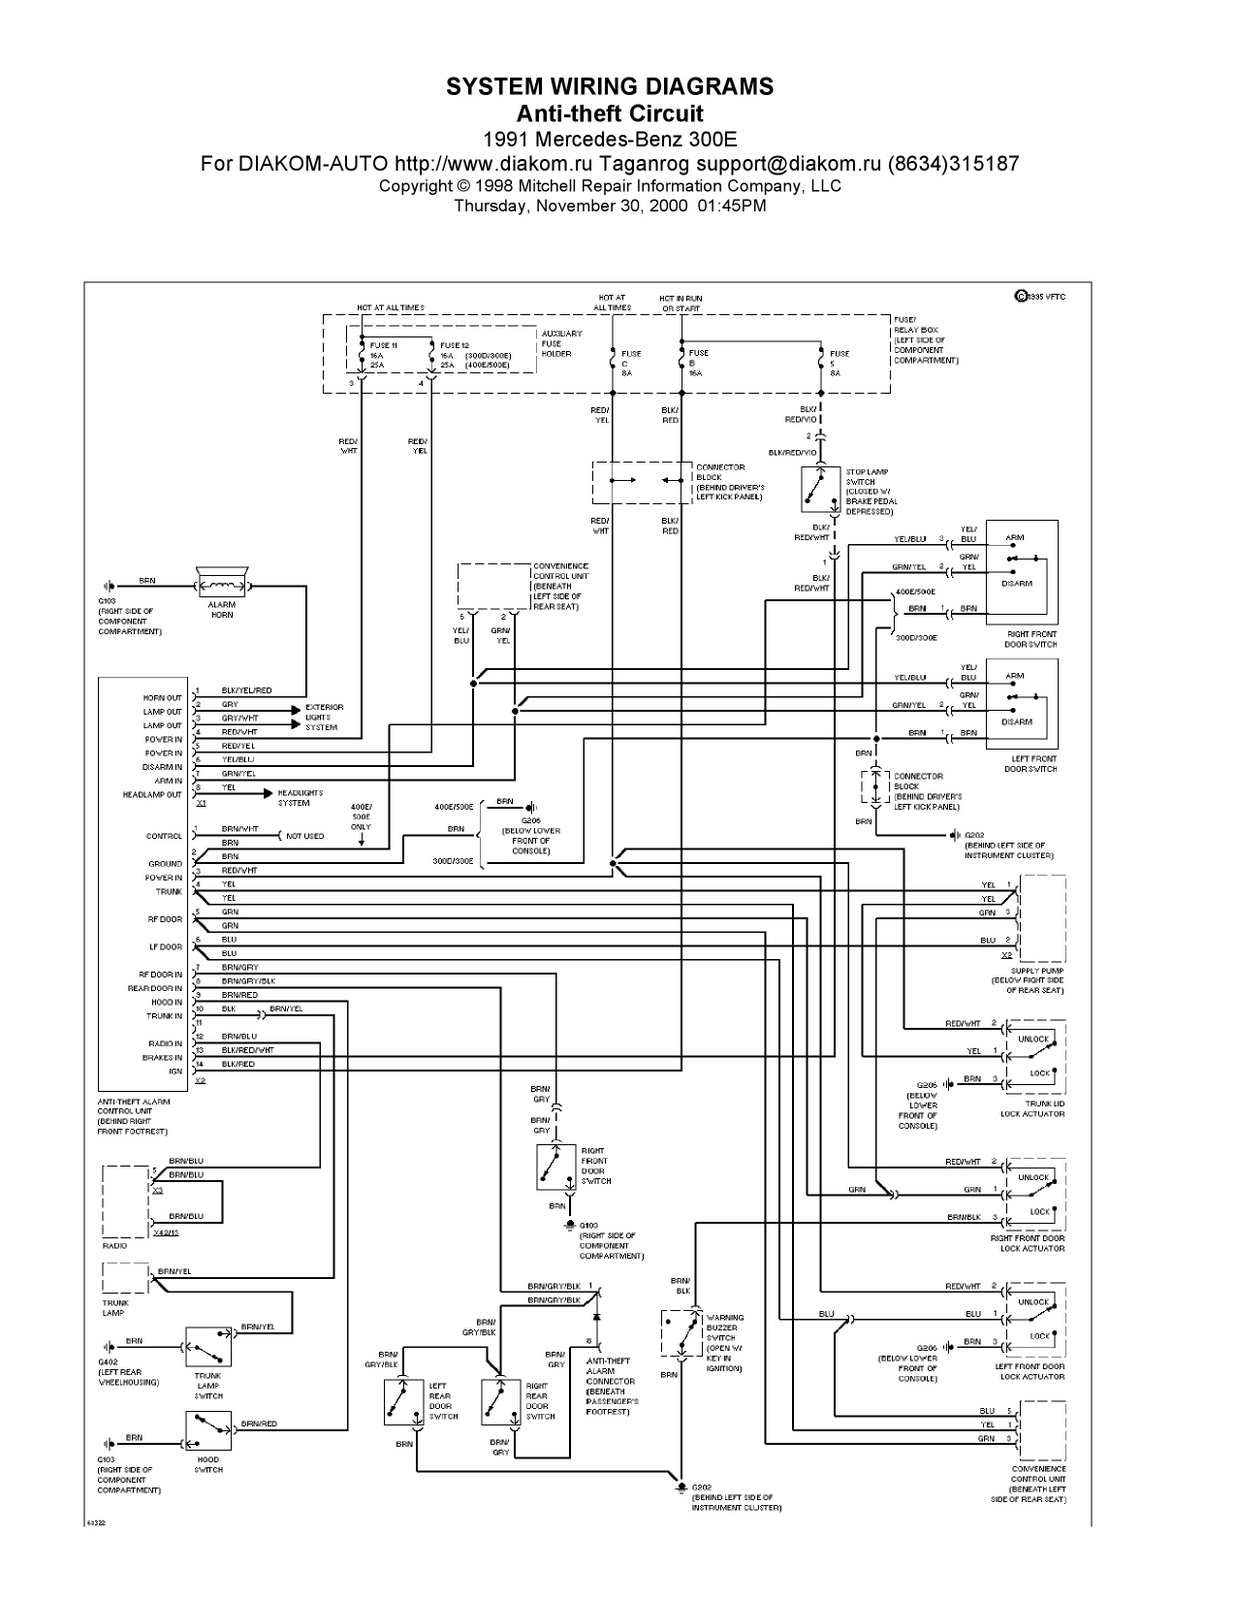 Wiring Diagram Mercedes W107 Home Power Windows W202 Browse Data C280 Egr Benz Schematics